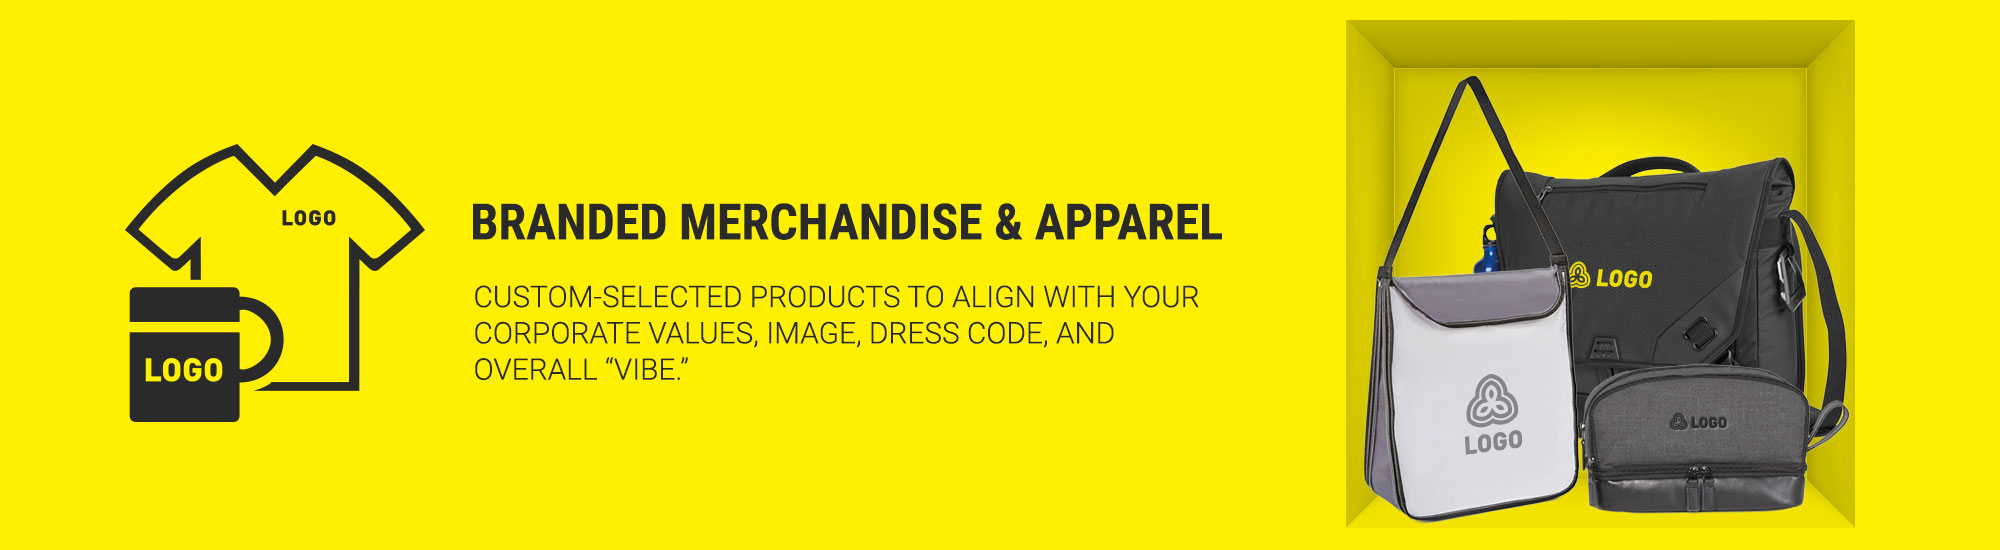 Branded Merchandise & Apparel